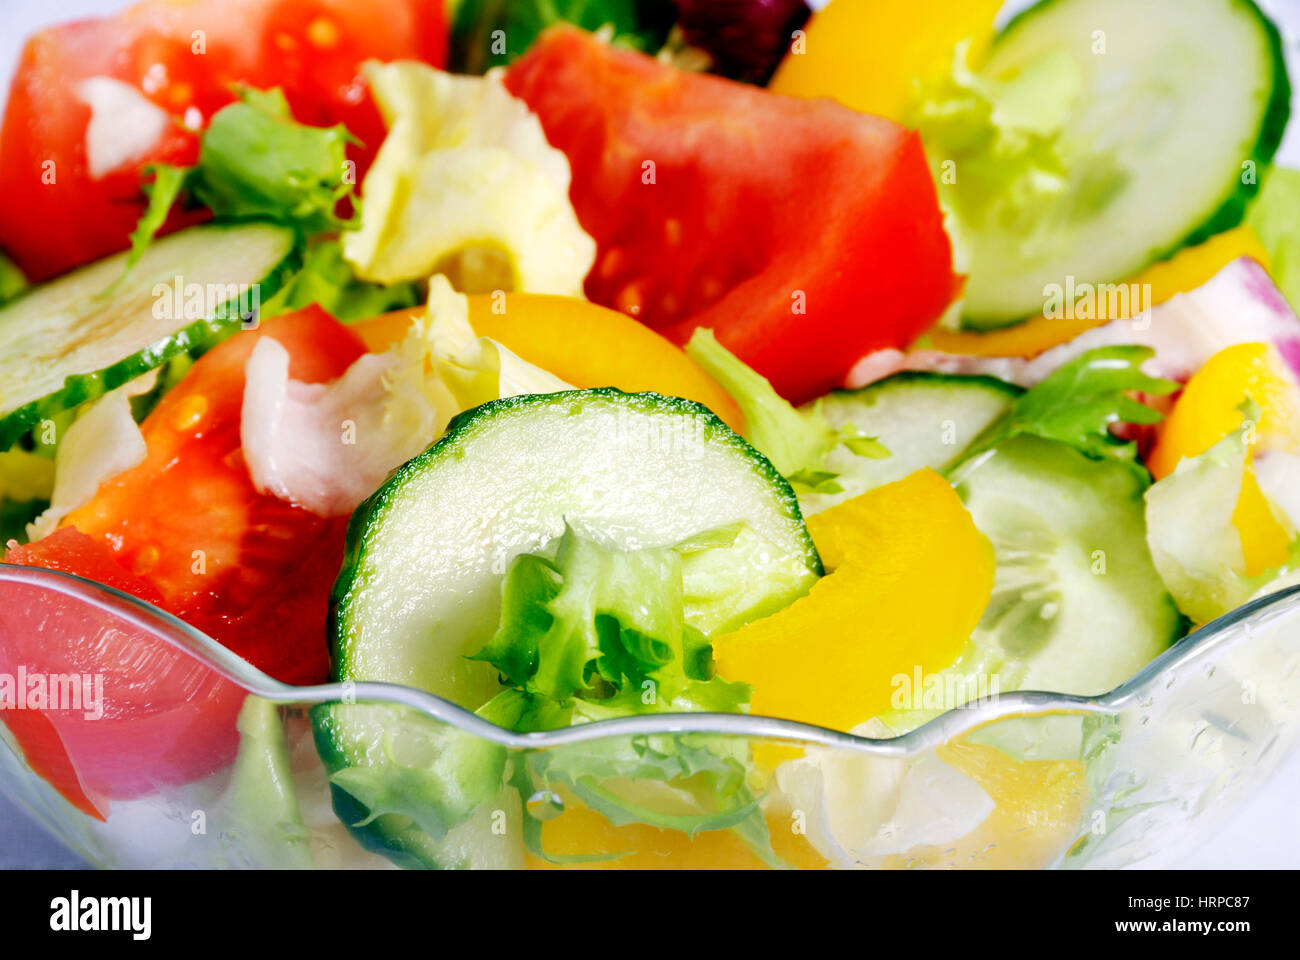 fresh salad in a bowl - Stock Image